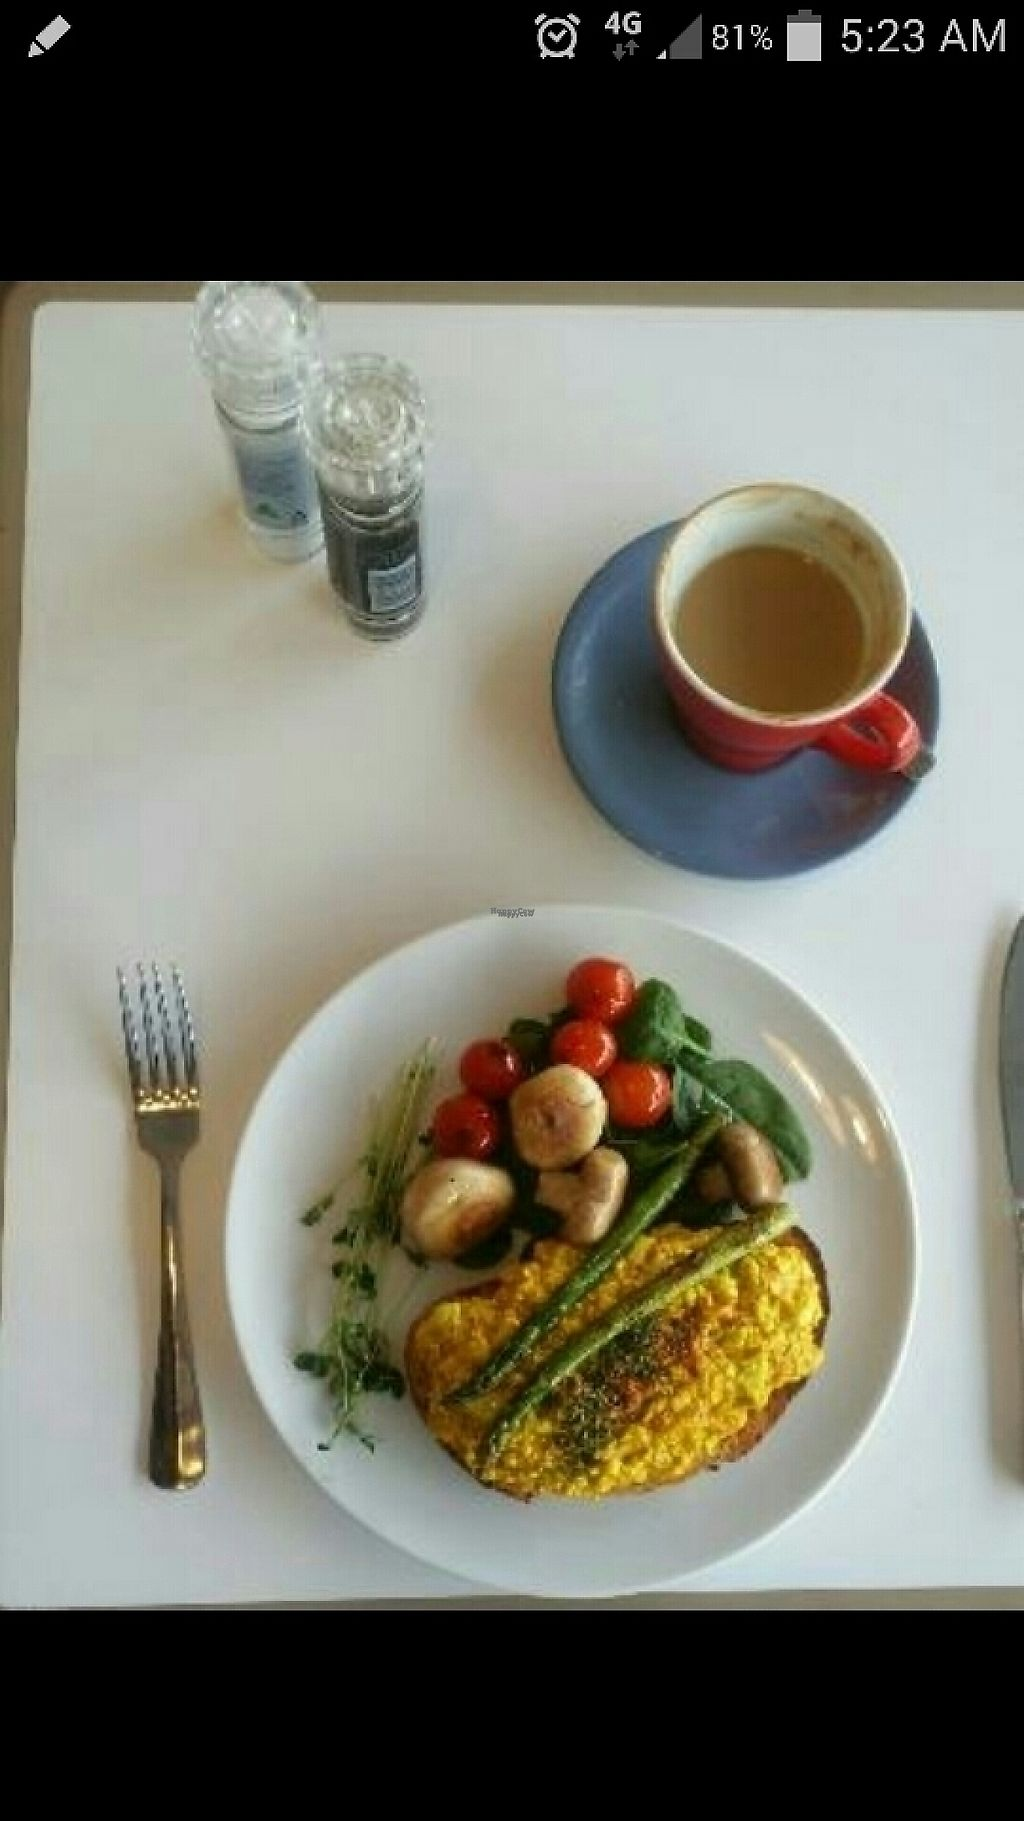 """Photo of Michelle's Cafe  by <a href=""""/members/profile/Mike%20Munsie"""">Mike Munsie</a> <br/>scrambled tofu & soy latte <br/> April 22, 2017  - <a href='/contact/abuse/image/59578/251175'>Report</a>"""